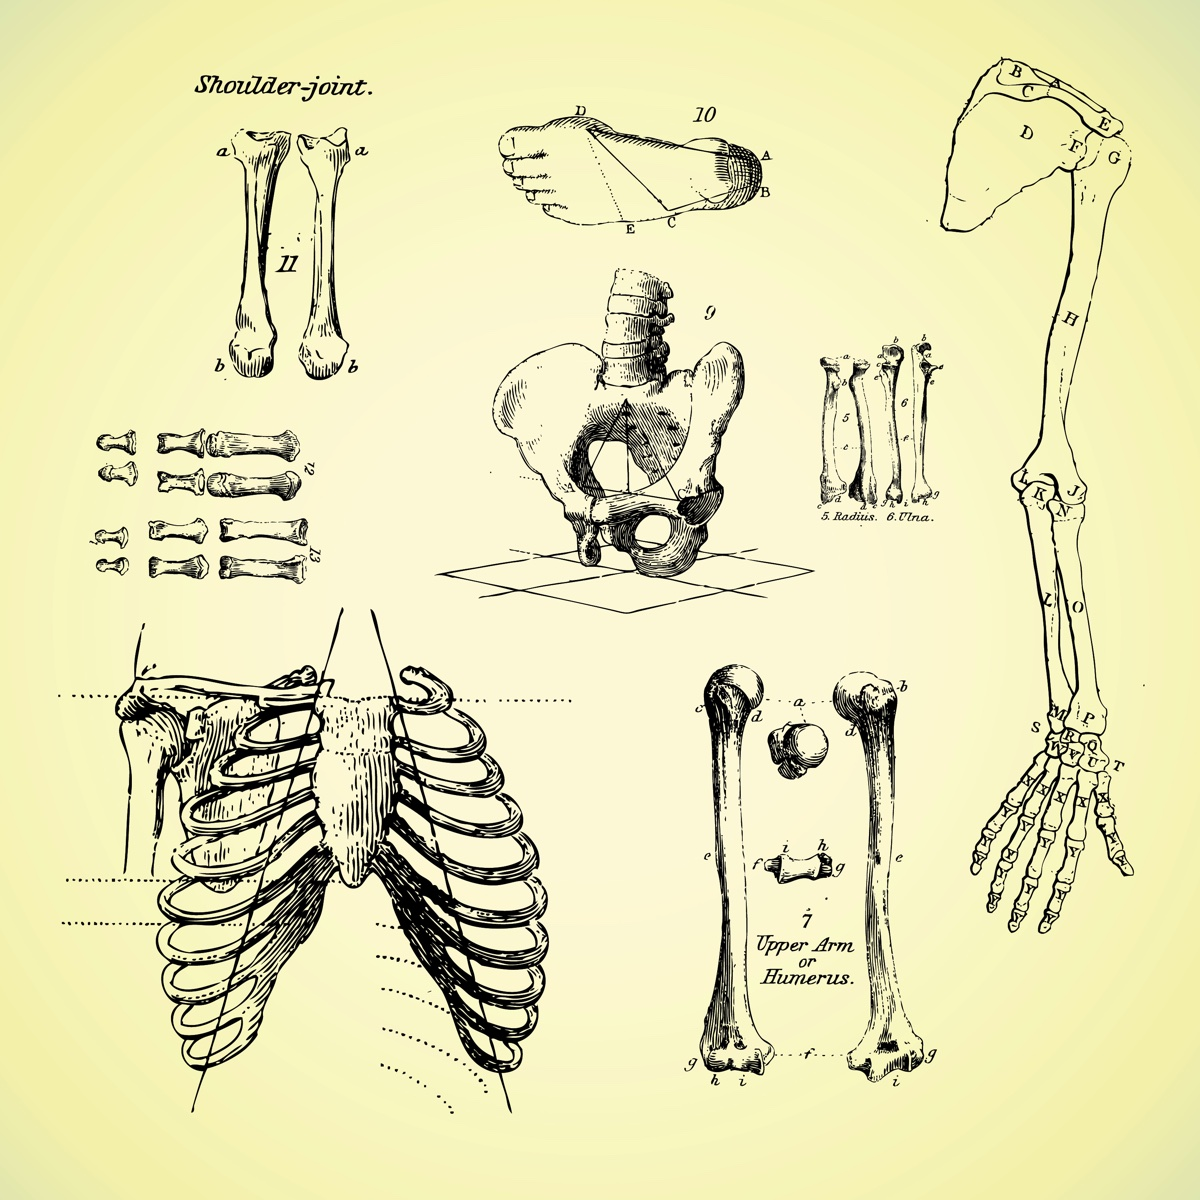 Skeleton anatomy as metaphor for email template